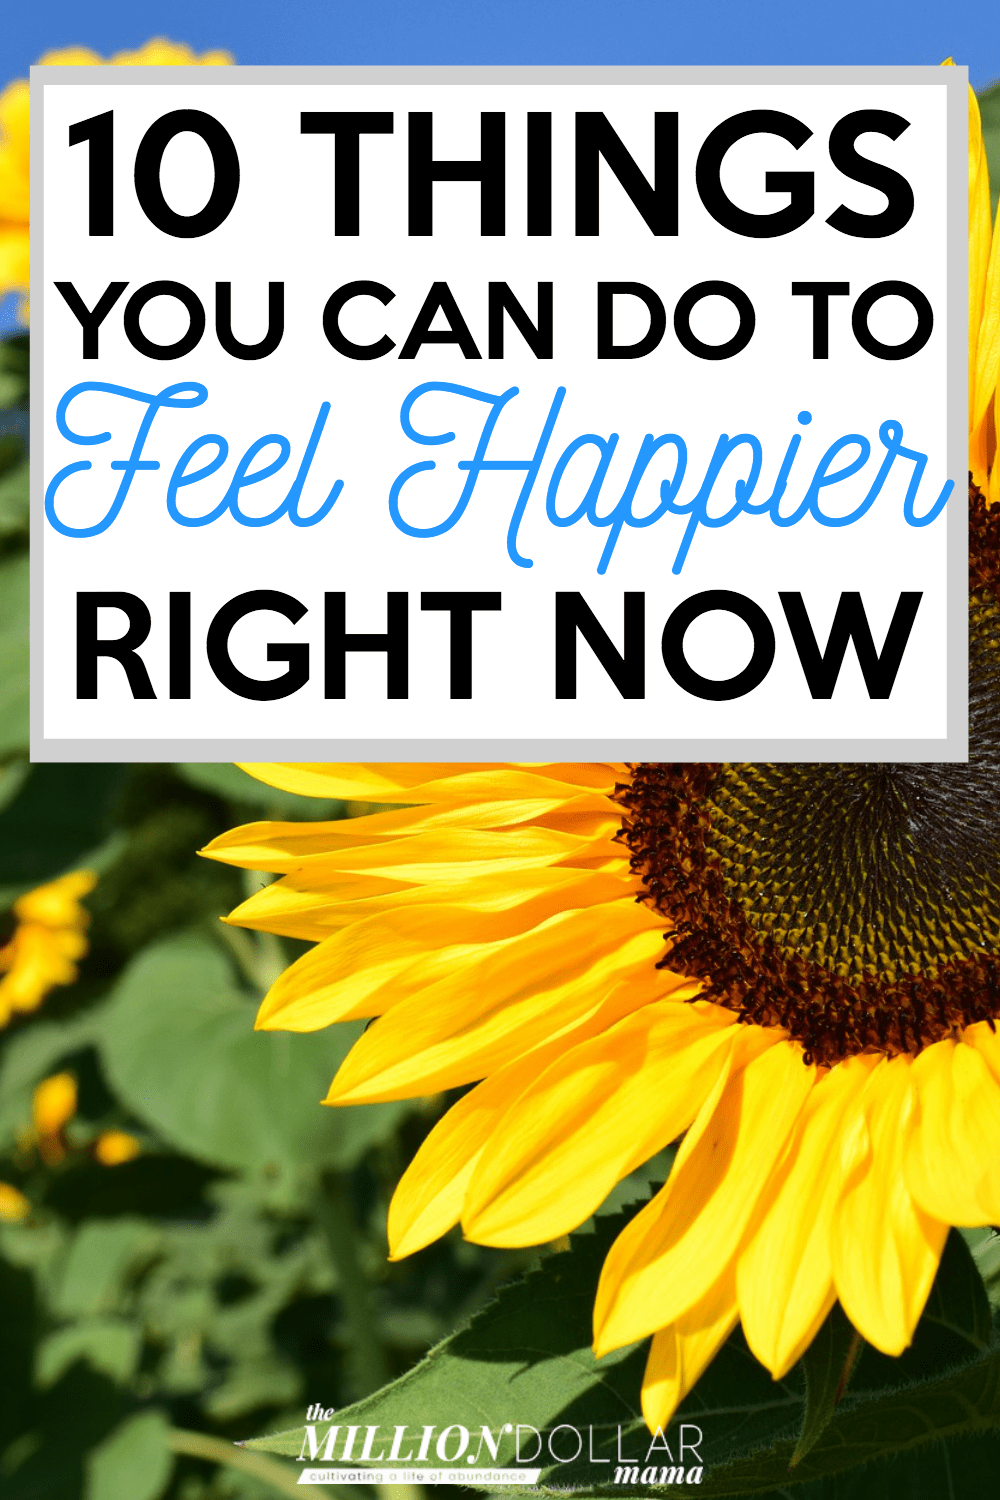 How to feel happy when you're down in the dumps! Click through to find out 10 things you can do to feel happier right now.